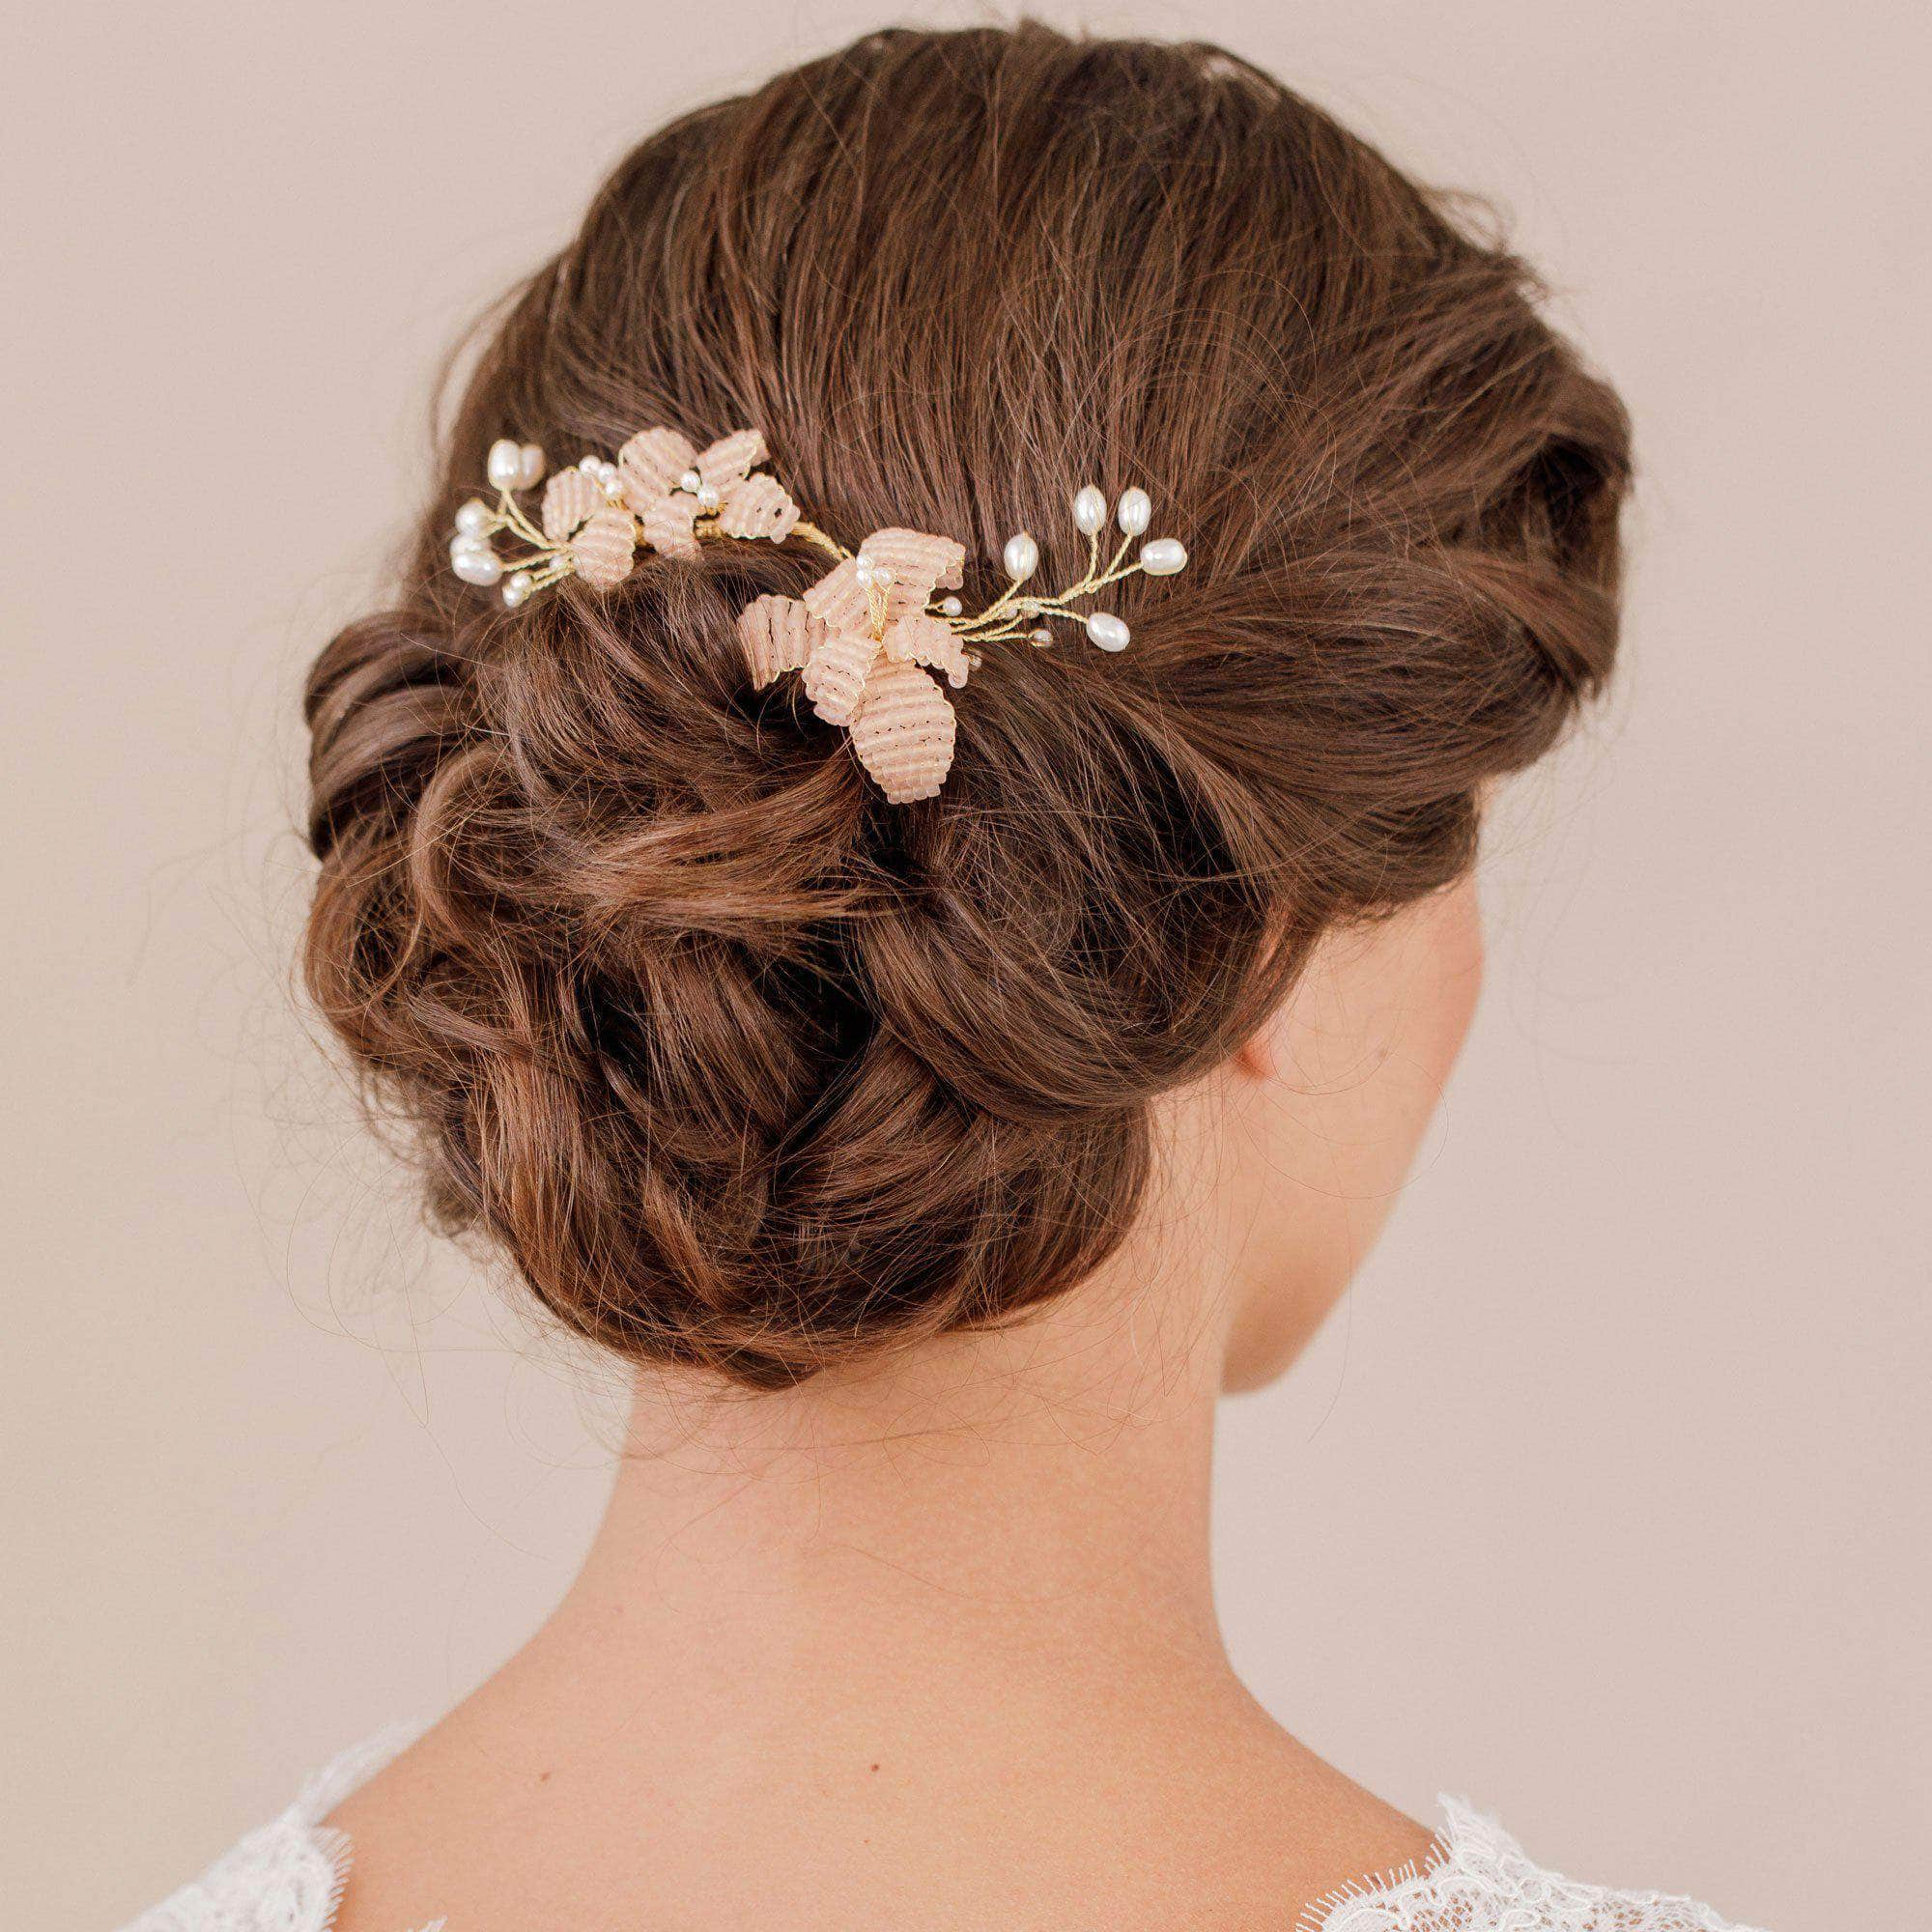 Wedding Hairvine Blush floral pearl headpiece - 'Magnolia'